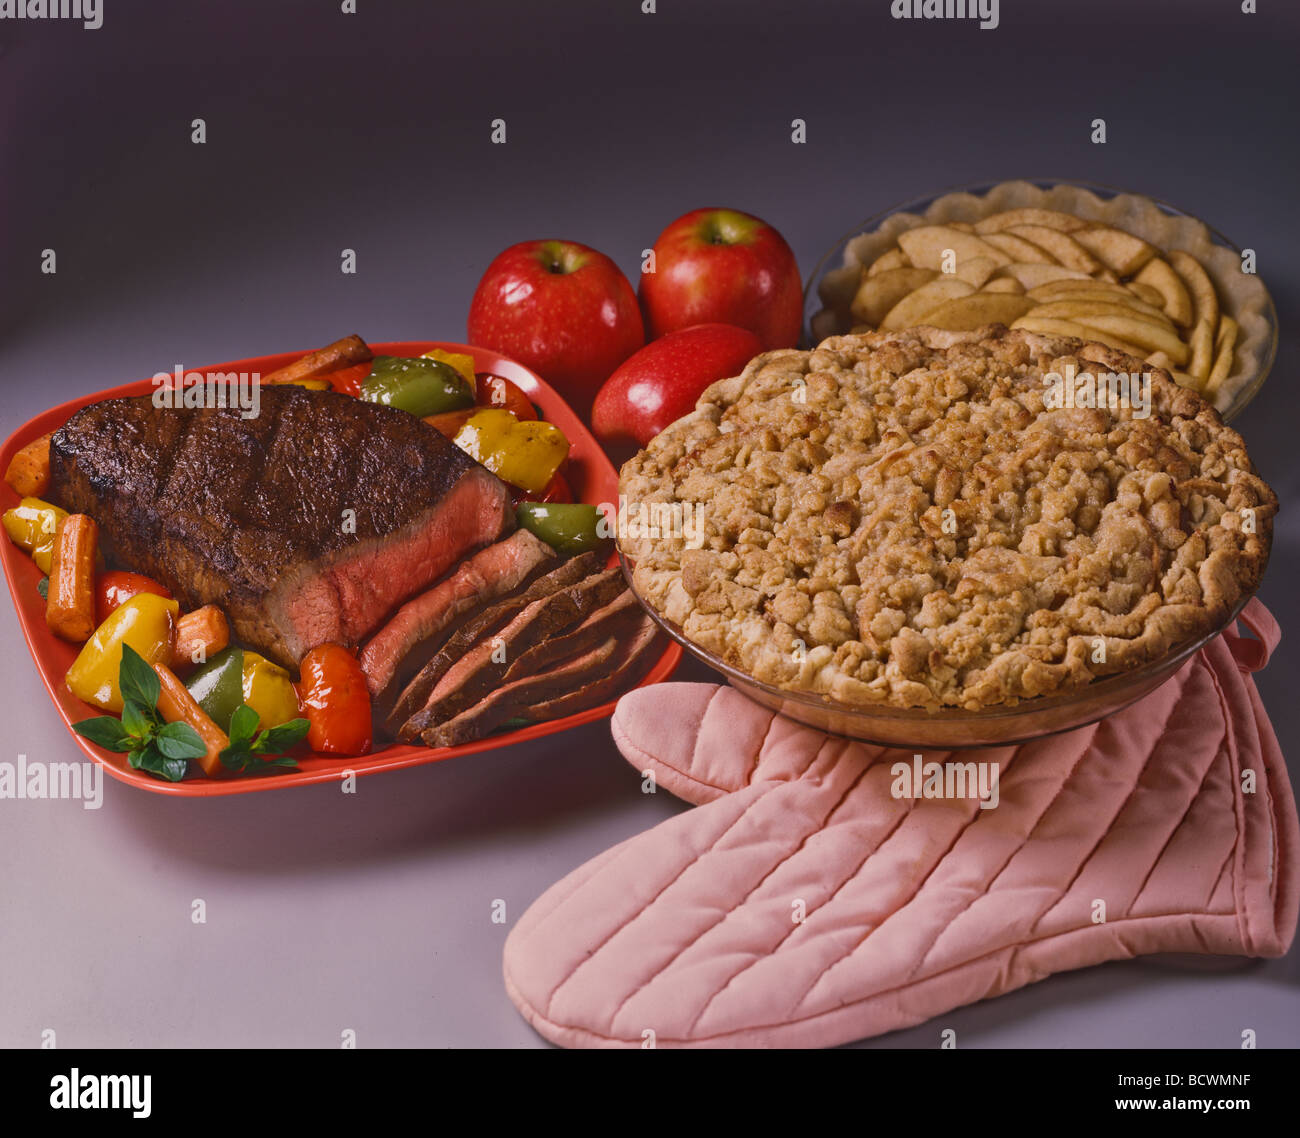 Country Kitchen Recipes Southwestern London Broil Steak Quick Easy Pastry Traditional Apple Crumb Pie Dessert Oven Mitt